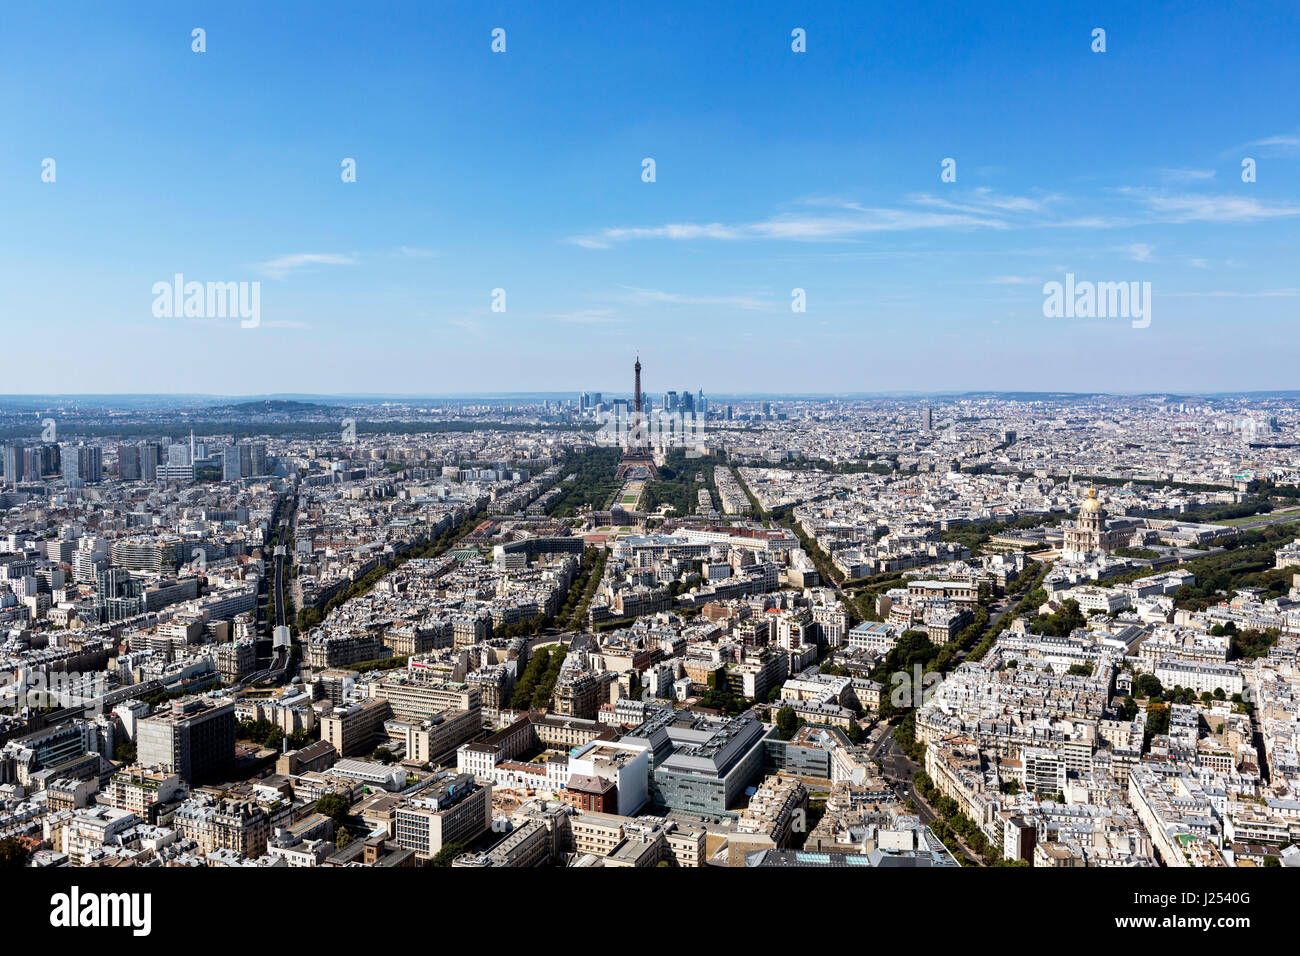 View over Paris, looking towards the Eiffel Tower and La Defense, from the observation deck at the top of the Tour - Stock Image